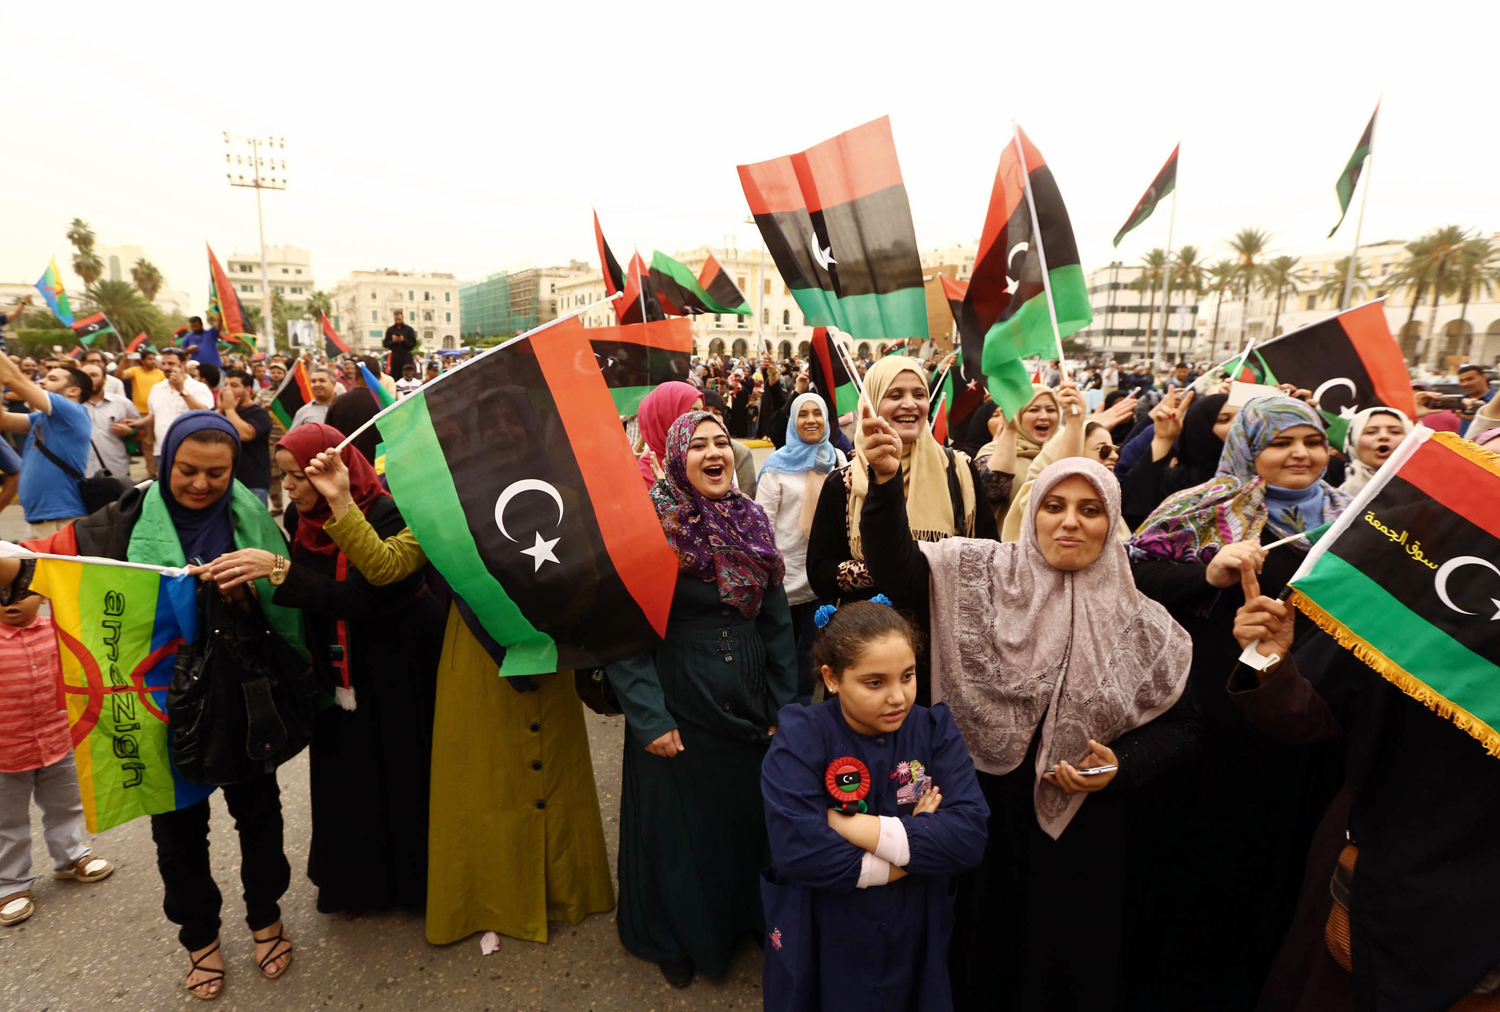 Libyans wave the national flag as they gather at Martyrs' Square to celebrate the decision of Libya's supreme court, in Tripoli on November 6, 2014.